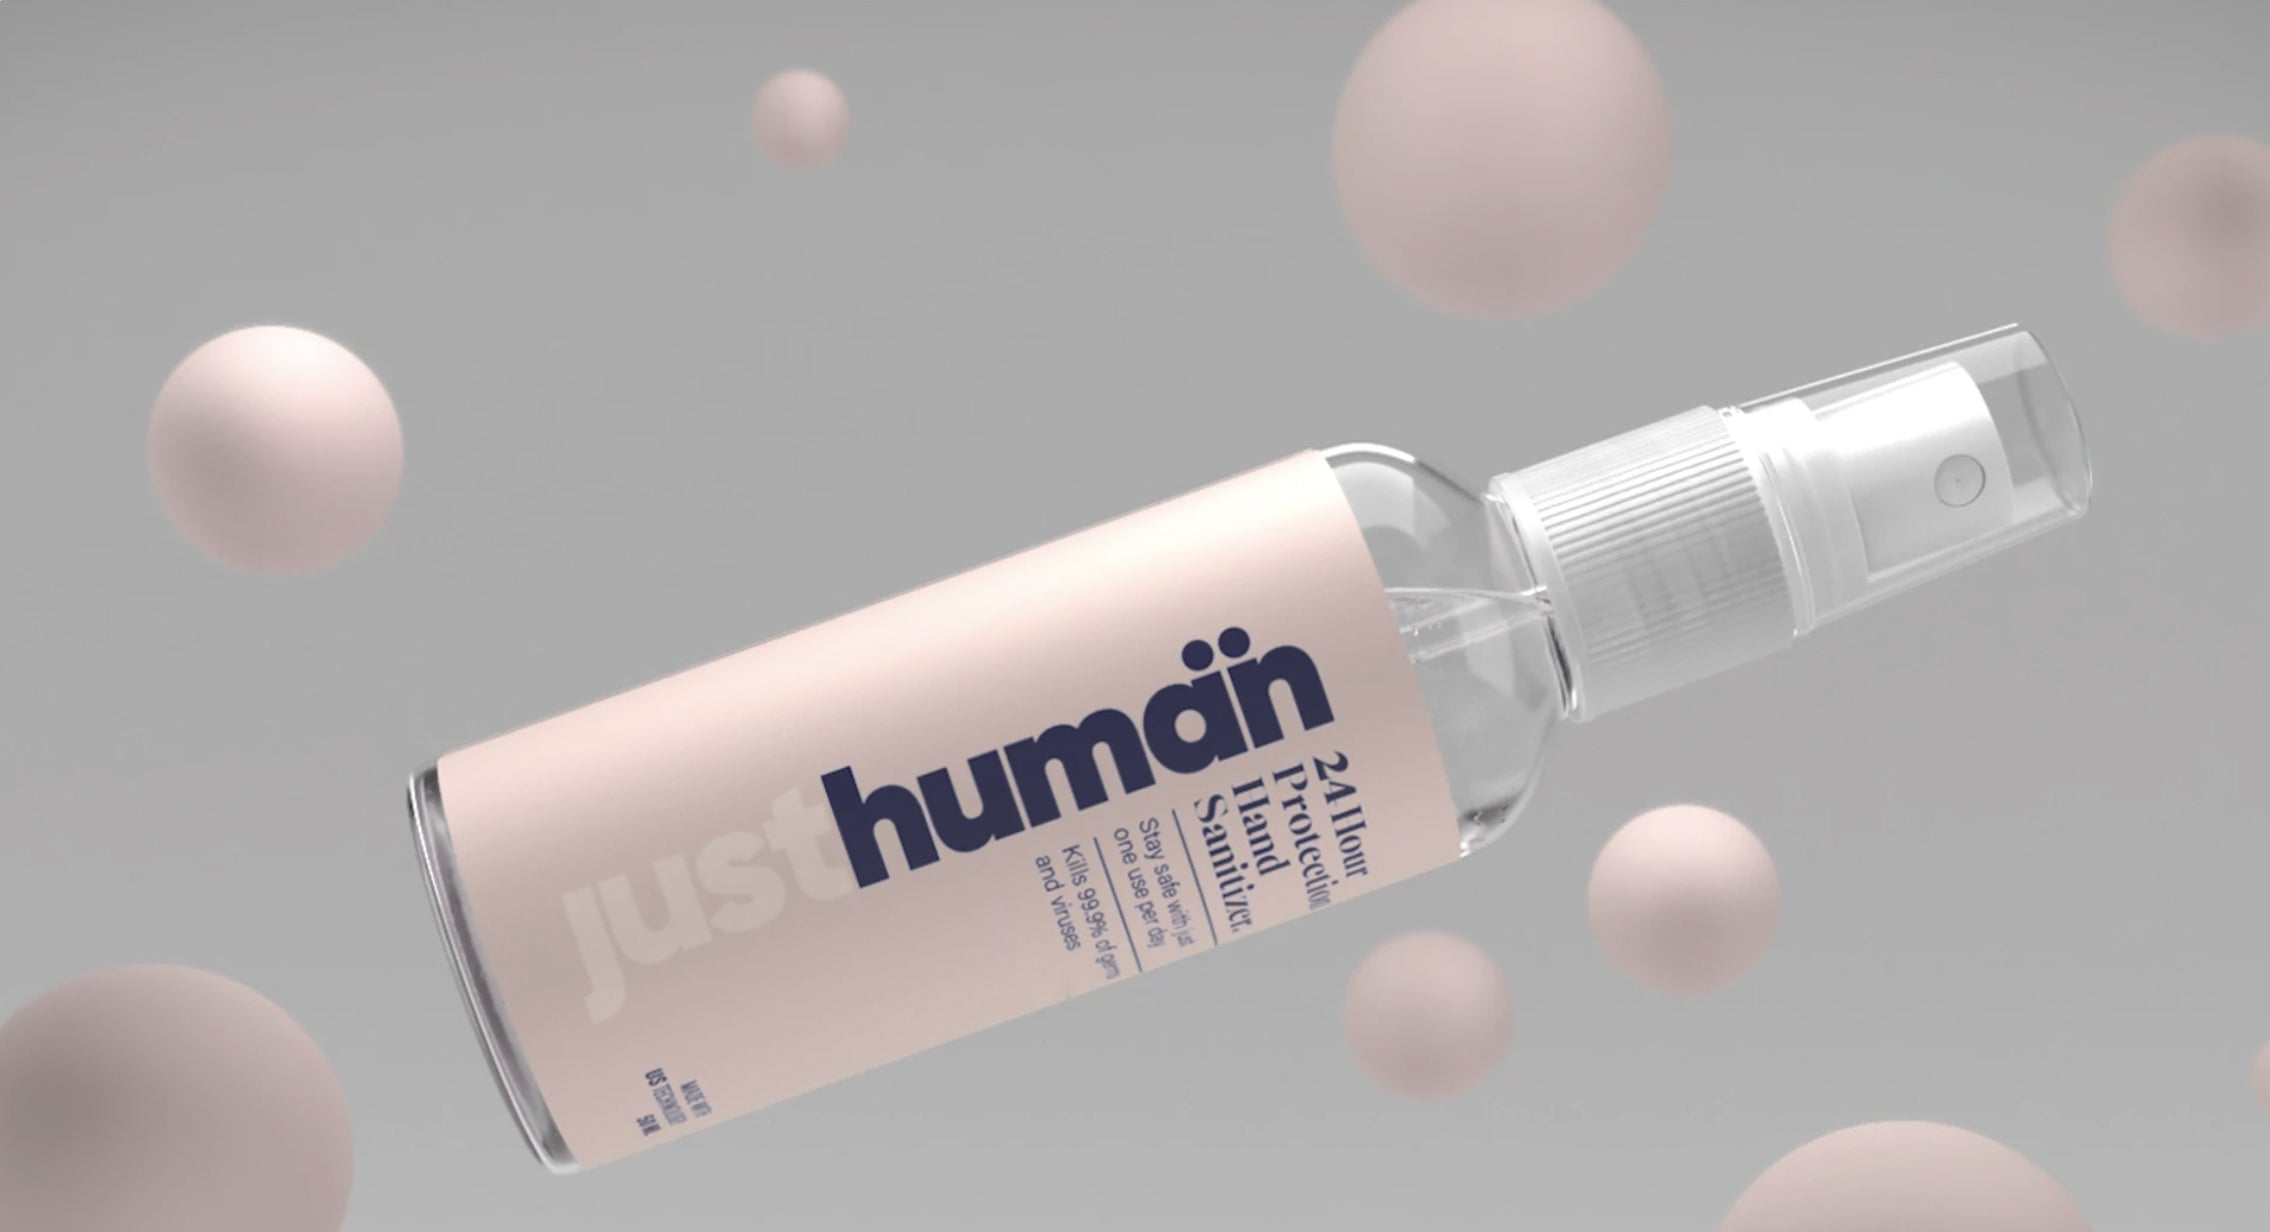 Just Human - Best Hand Sanitizer Brand in India